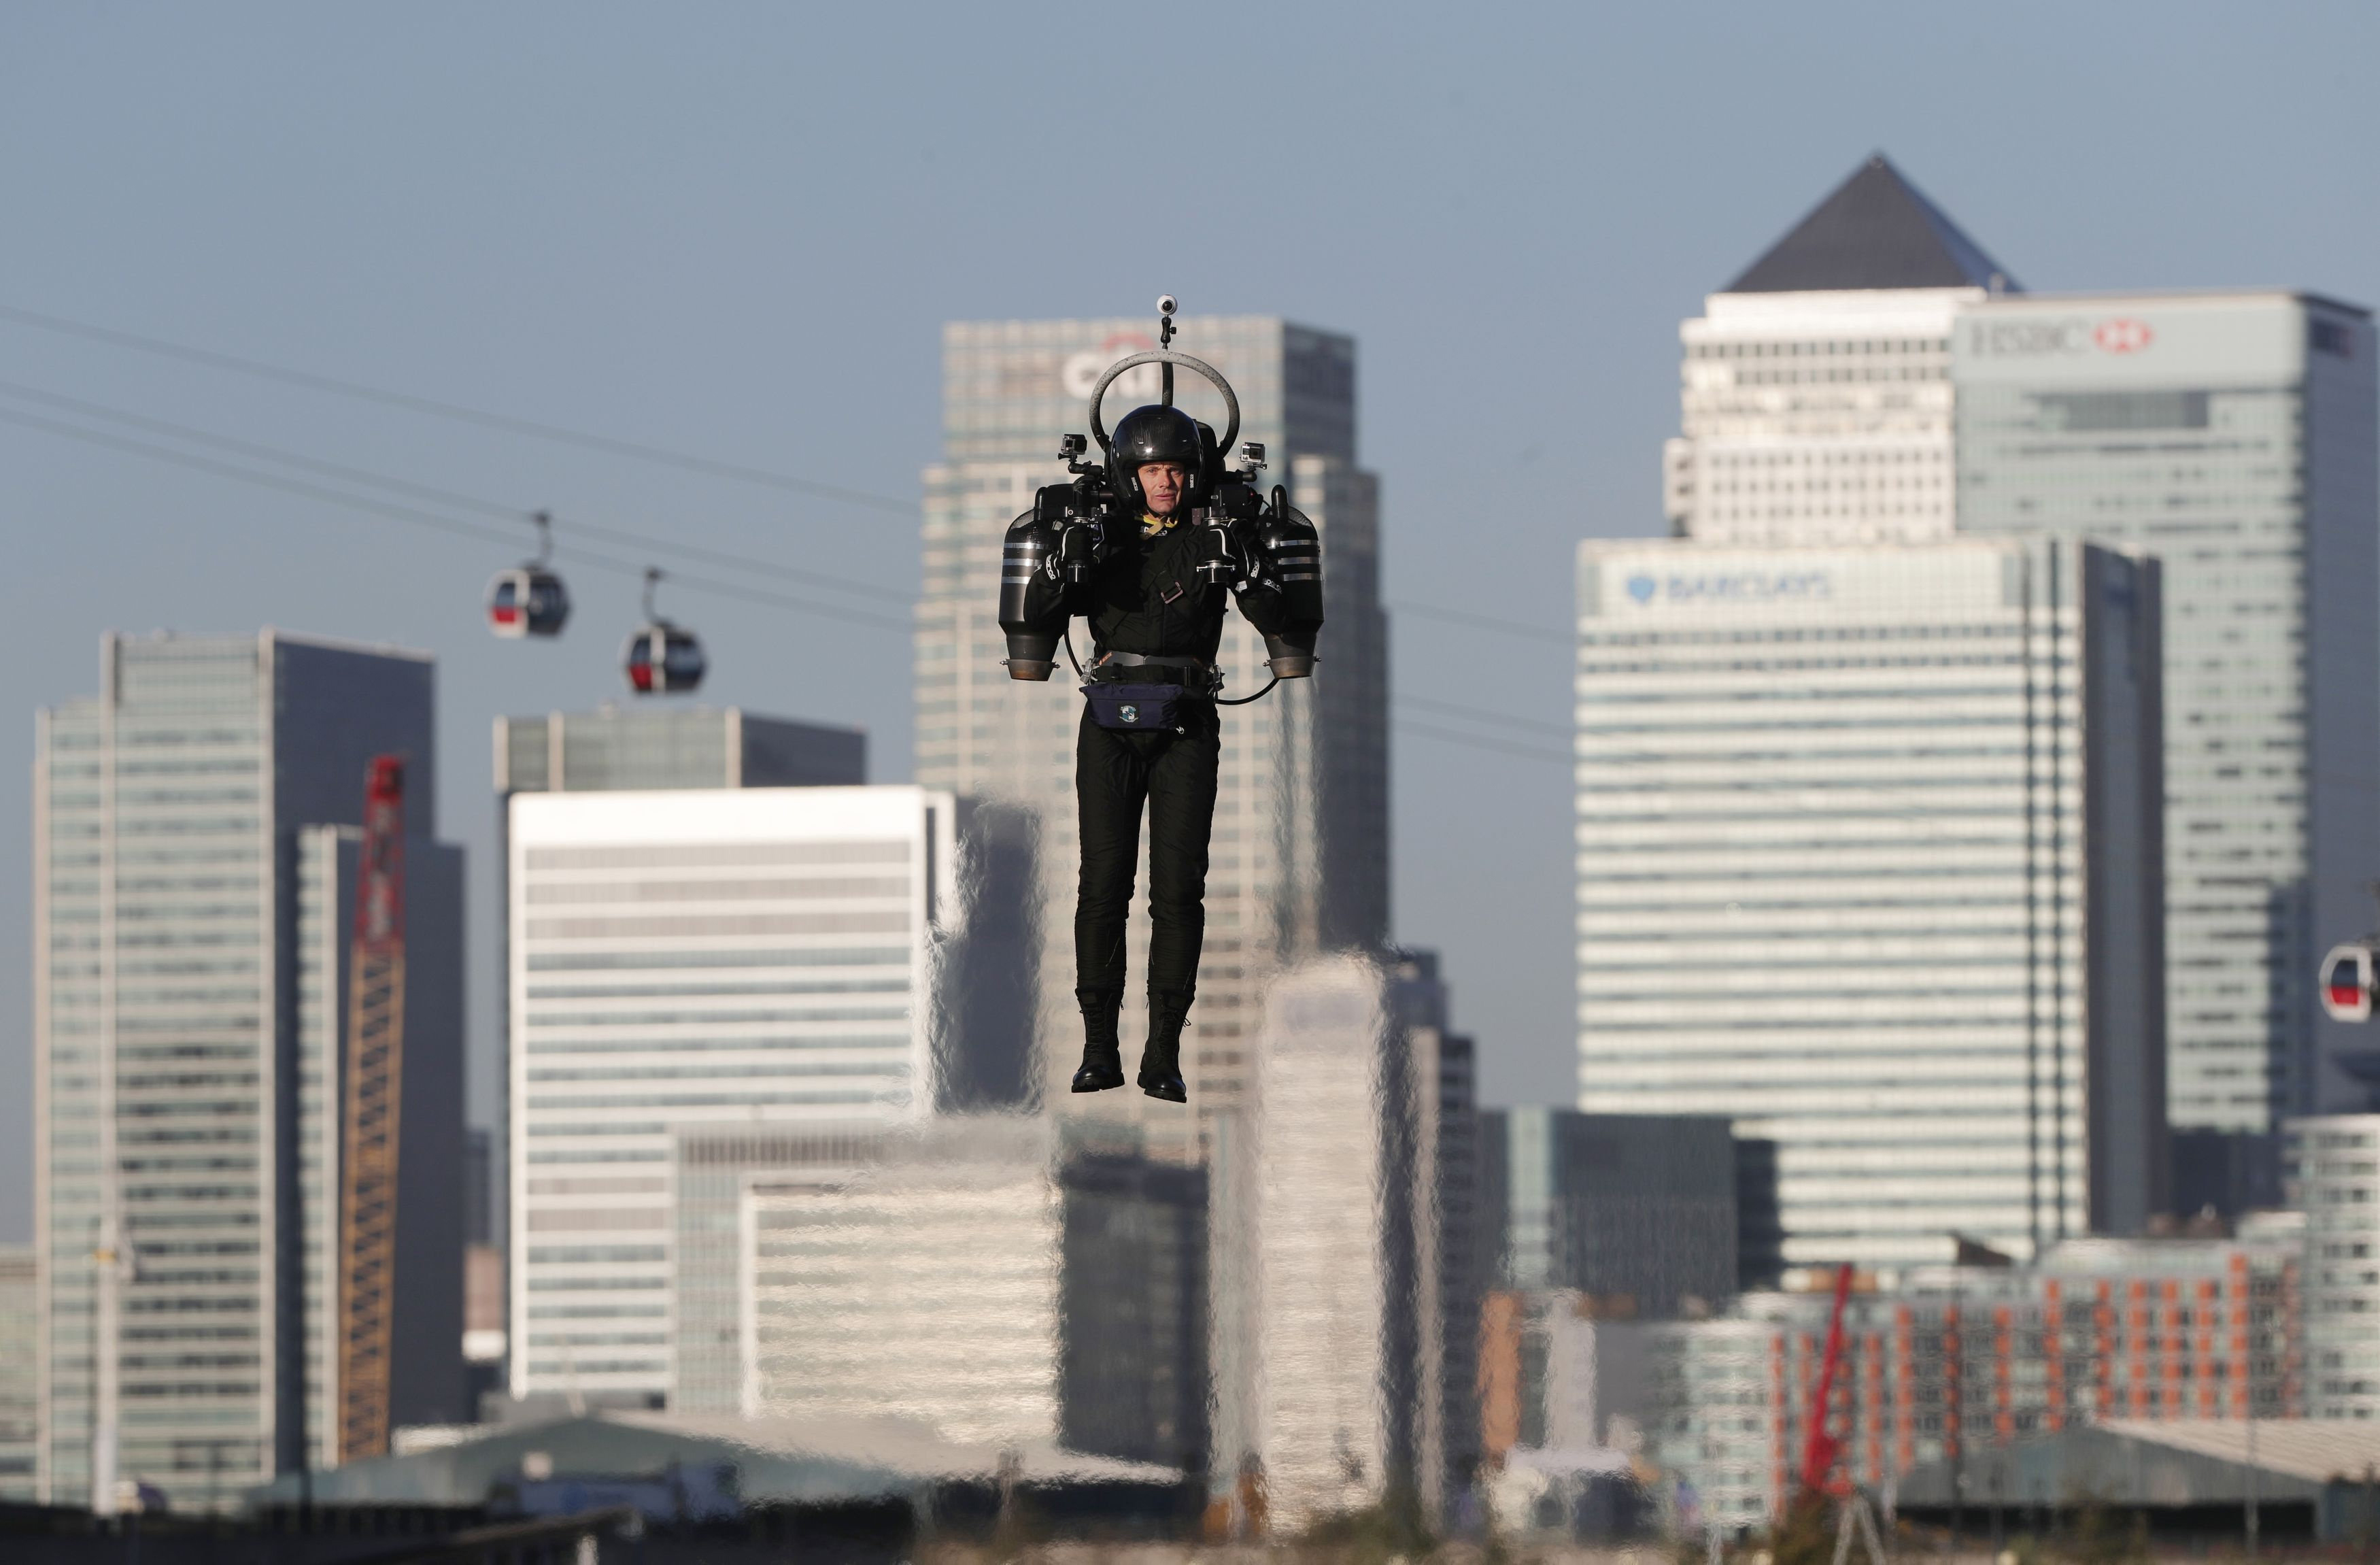 David Mayman pilots the JB-10 Jetpack flying machine over the Royal Victoria Docks in east London on its maiden flight in the UK to mark the launch of an equity crowdfunding campaign on Seedrs. PRESS ASSOCIATION Photo. Picture date: Wednesday October 5, 2016. Light enough to be carried by one person, small enough to fit in a car, and with a flight time of up to 10 minutes at speeds of up of 60mph, the JB-10 has a wide range of potential applications and commercial uses. See PA story TRANSPORT Jetpack. Photo credit should read: Yui Mok/PA Wire